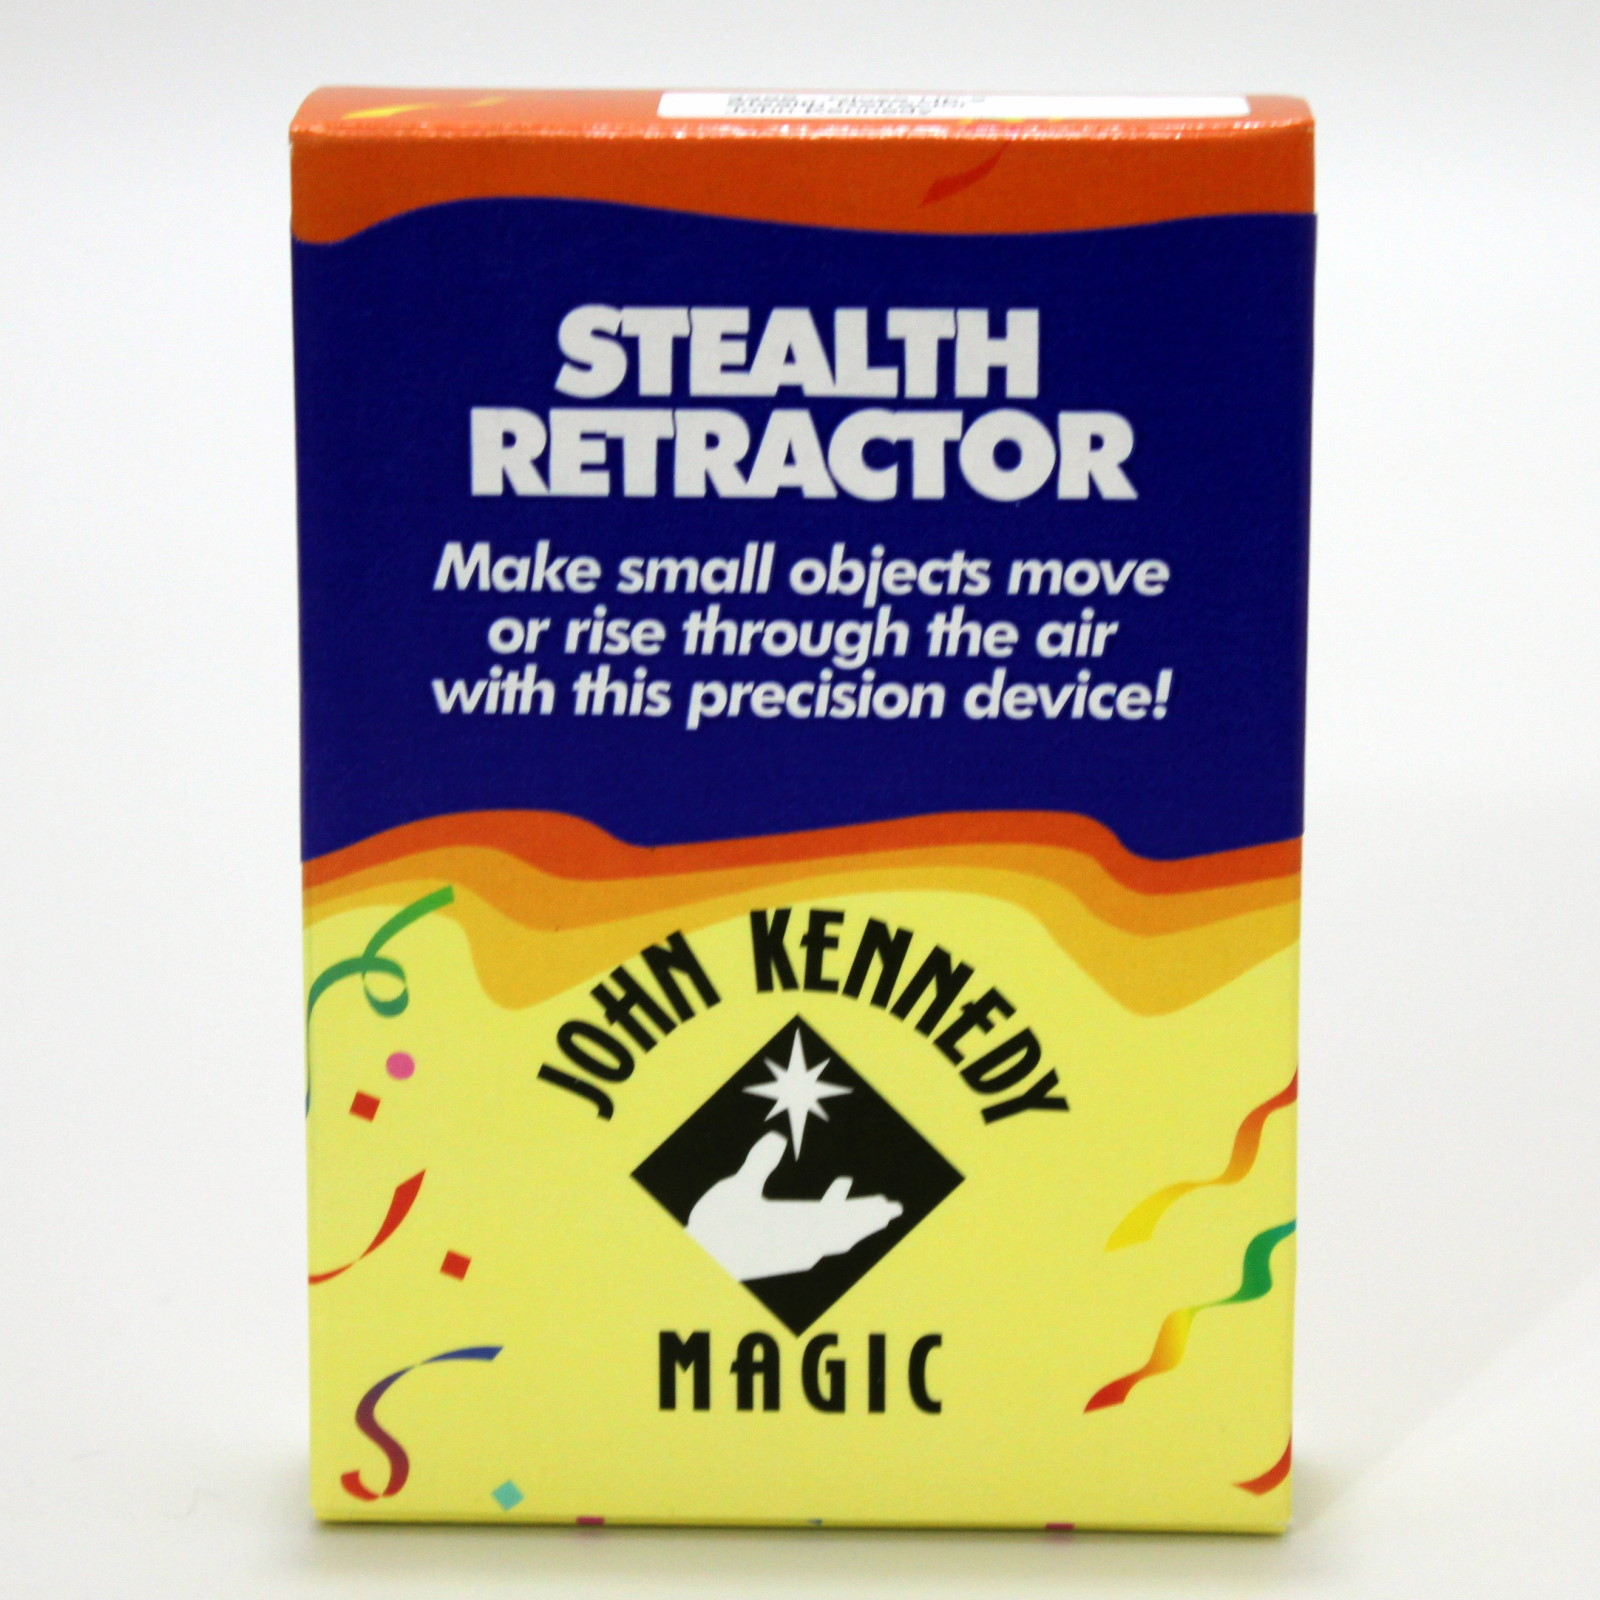 Stealth Retractor by John Kennedy